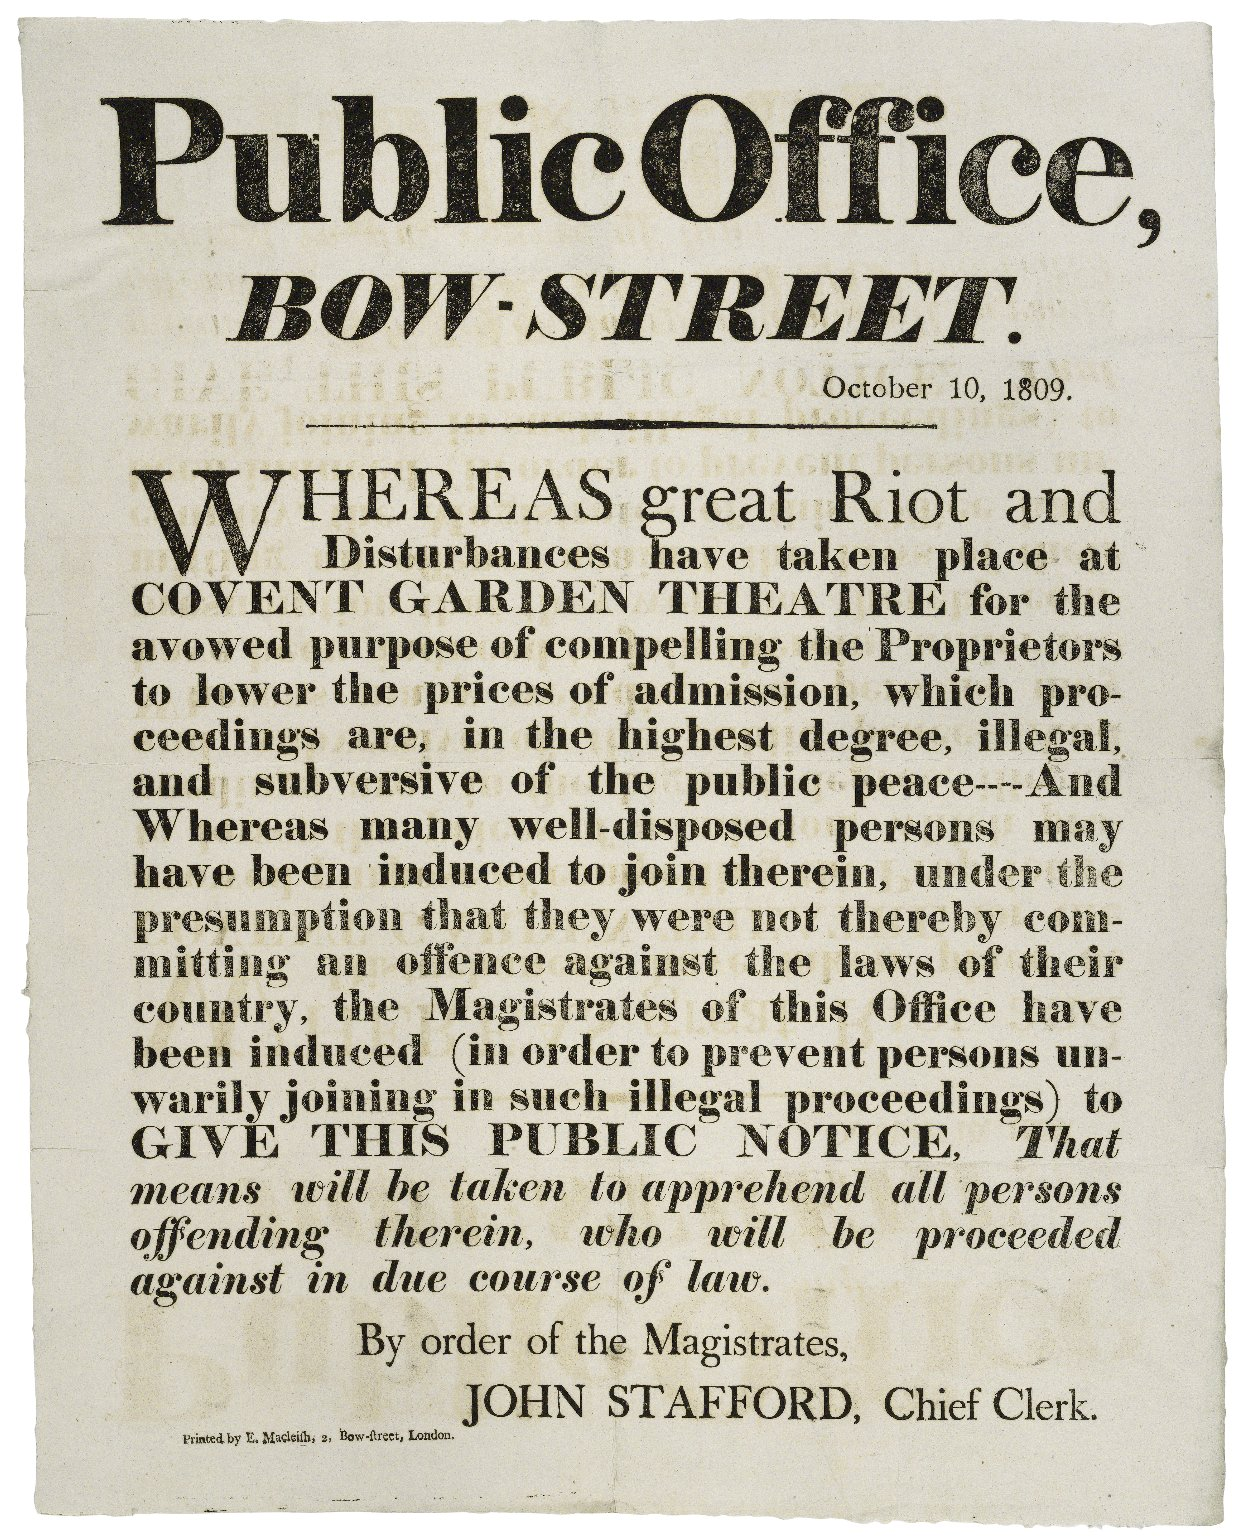 Whereas great riot and disturbances have taken place at Covent Garden Theatre for the avowed purpose of compelling the proprietors to lower the prices of admission ... the magistrates of this office have been induced (in order to prevent persons unwarily joining in such illegal proceedings) to give this public notice, that means will be taken to apprehend all persons offending therein, who will be proceeded against in due course of law.